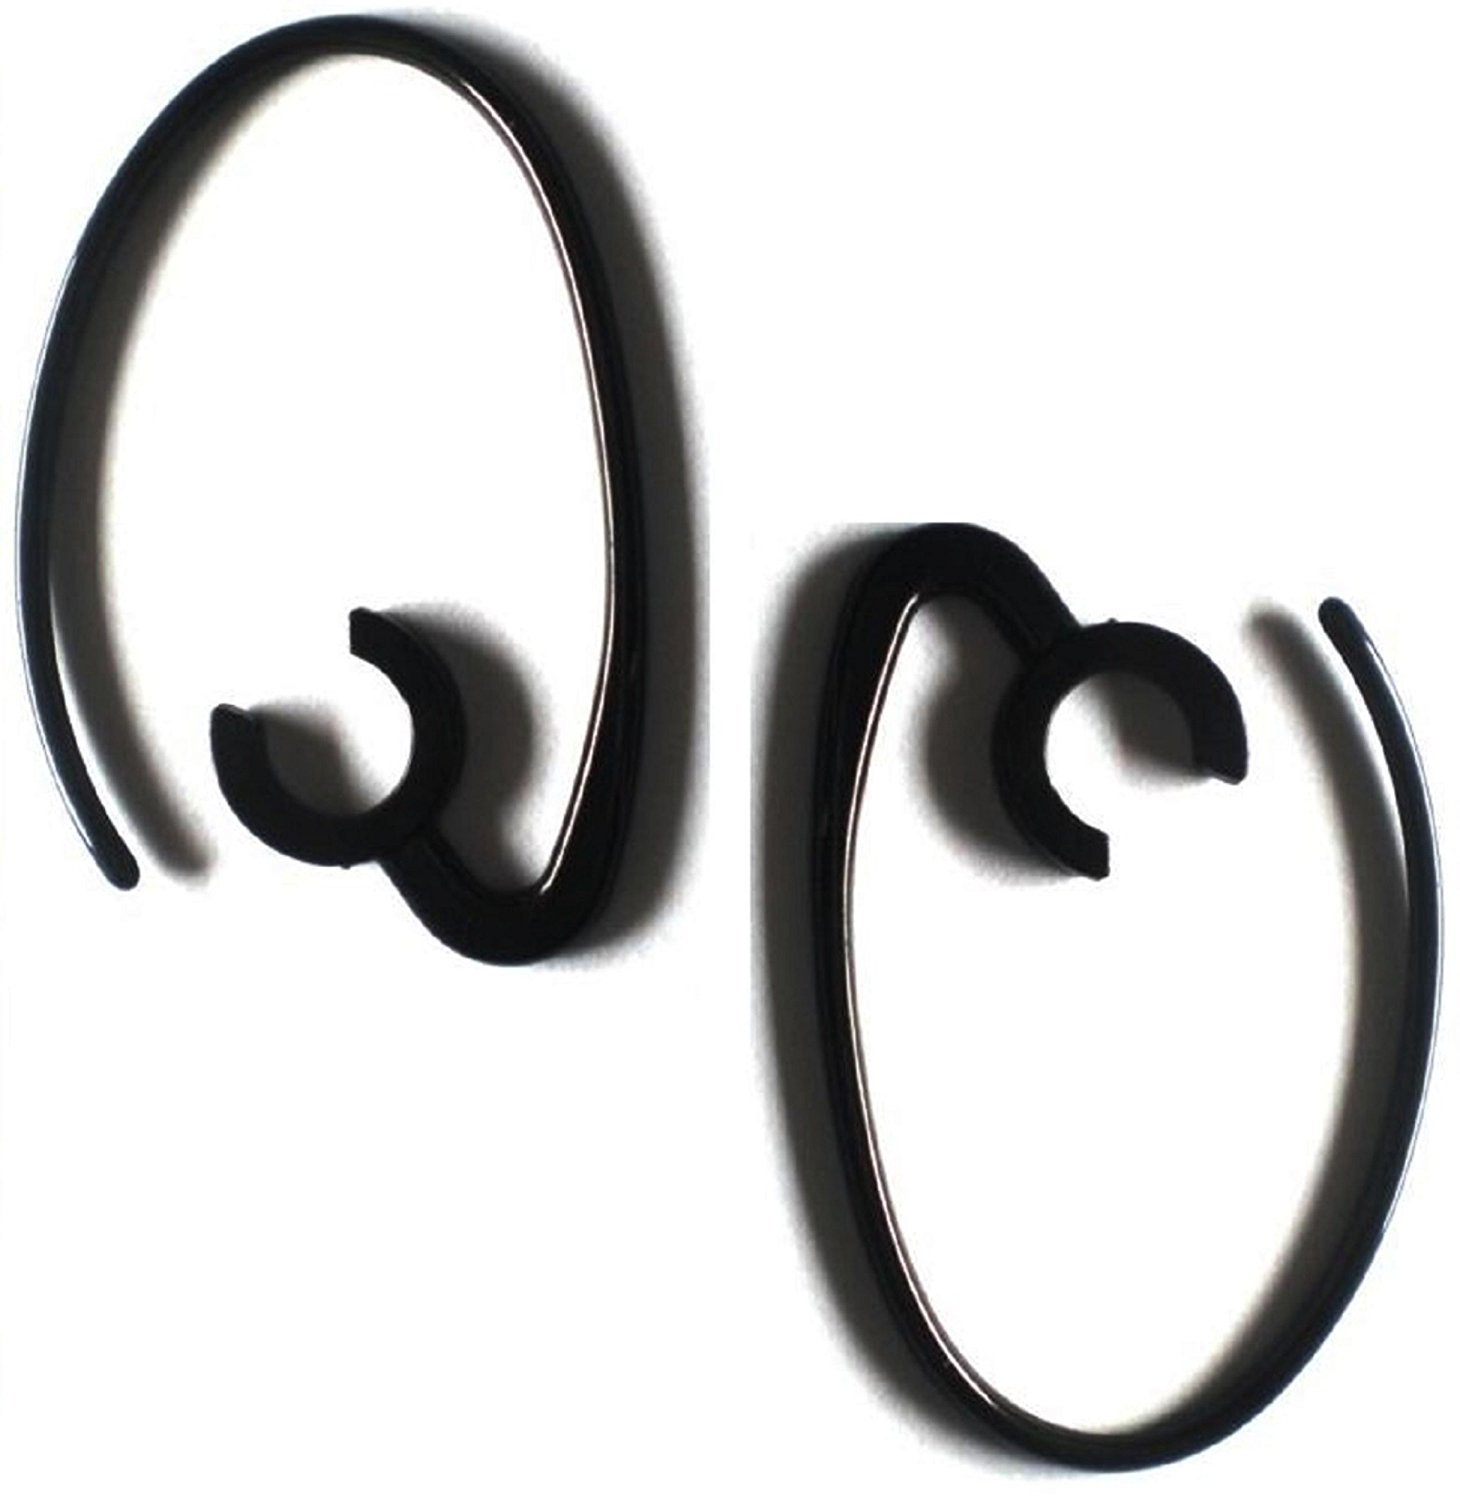 Buy 2 Earhooks For Blackberry Hs700 Hs500 Hs300 Hs 700 Hs 500 Hs 300 Wireless Bluetooth Headset Headsets Ear Hooks Loops Clips Stabilizers Earloops Earclips Replacement Parts In Cheap Price On Alibaba Com